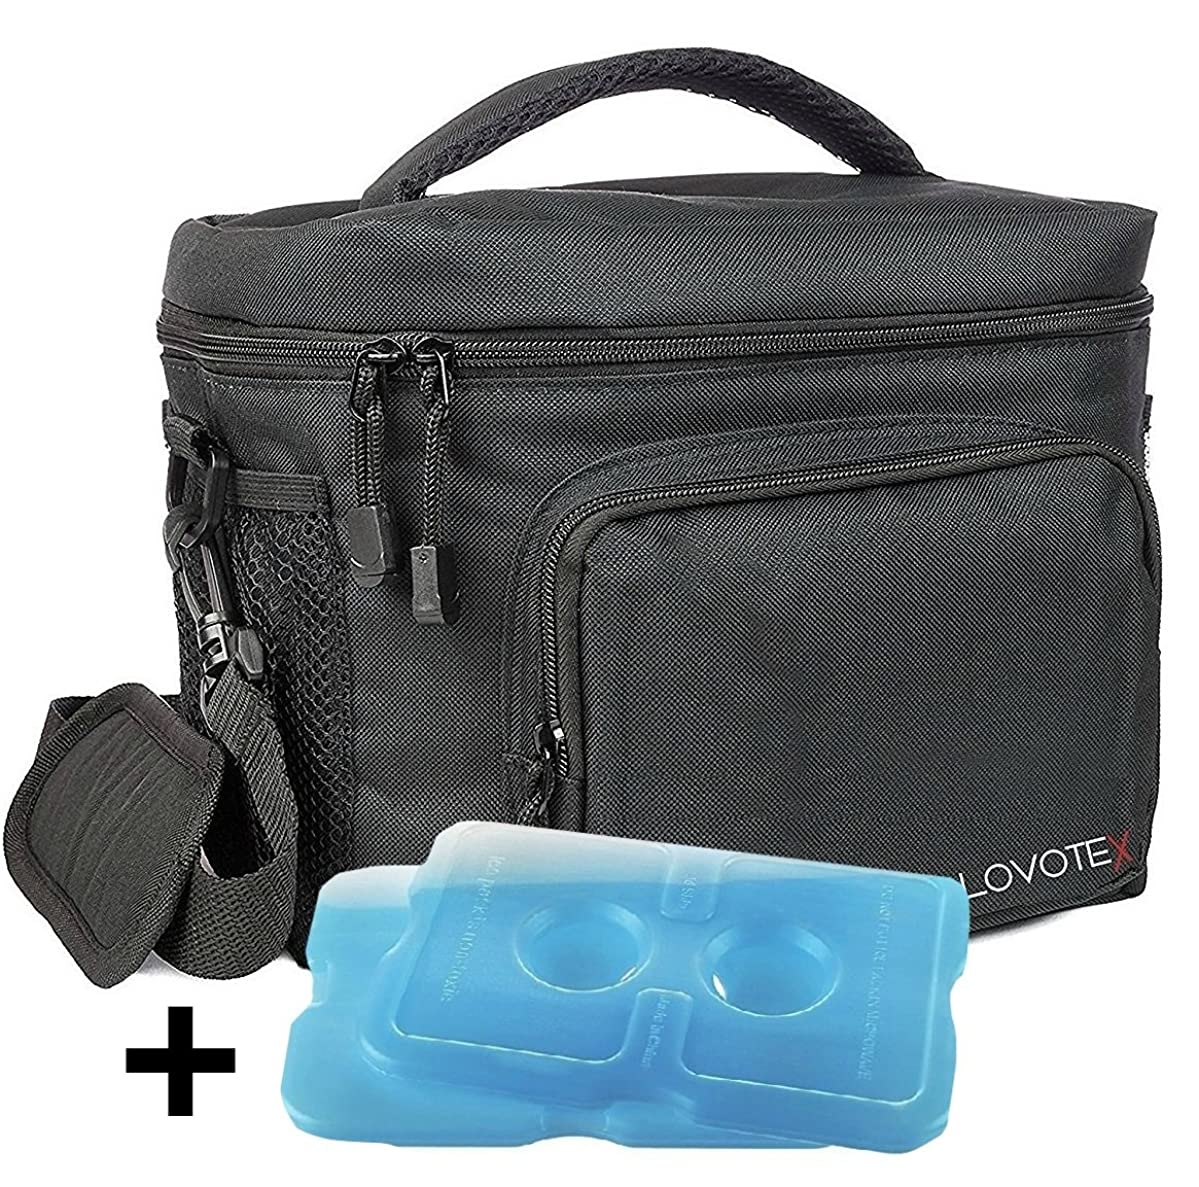 Large Insulated Lunch Bag Cooler Tote With 2 Reusable Cooler Ice Packs Easy Pull Zippers, Detachable Shoulder Strap, Roomy Compartments For Lunch Box, Bottles, Containers, Travel, Camping & More